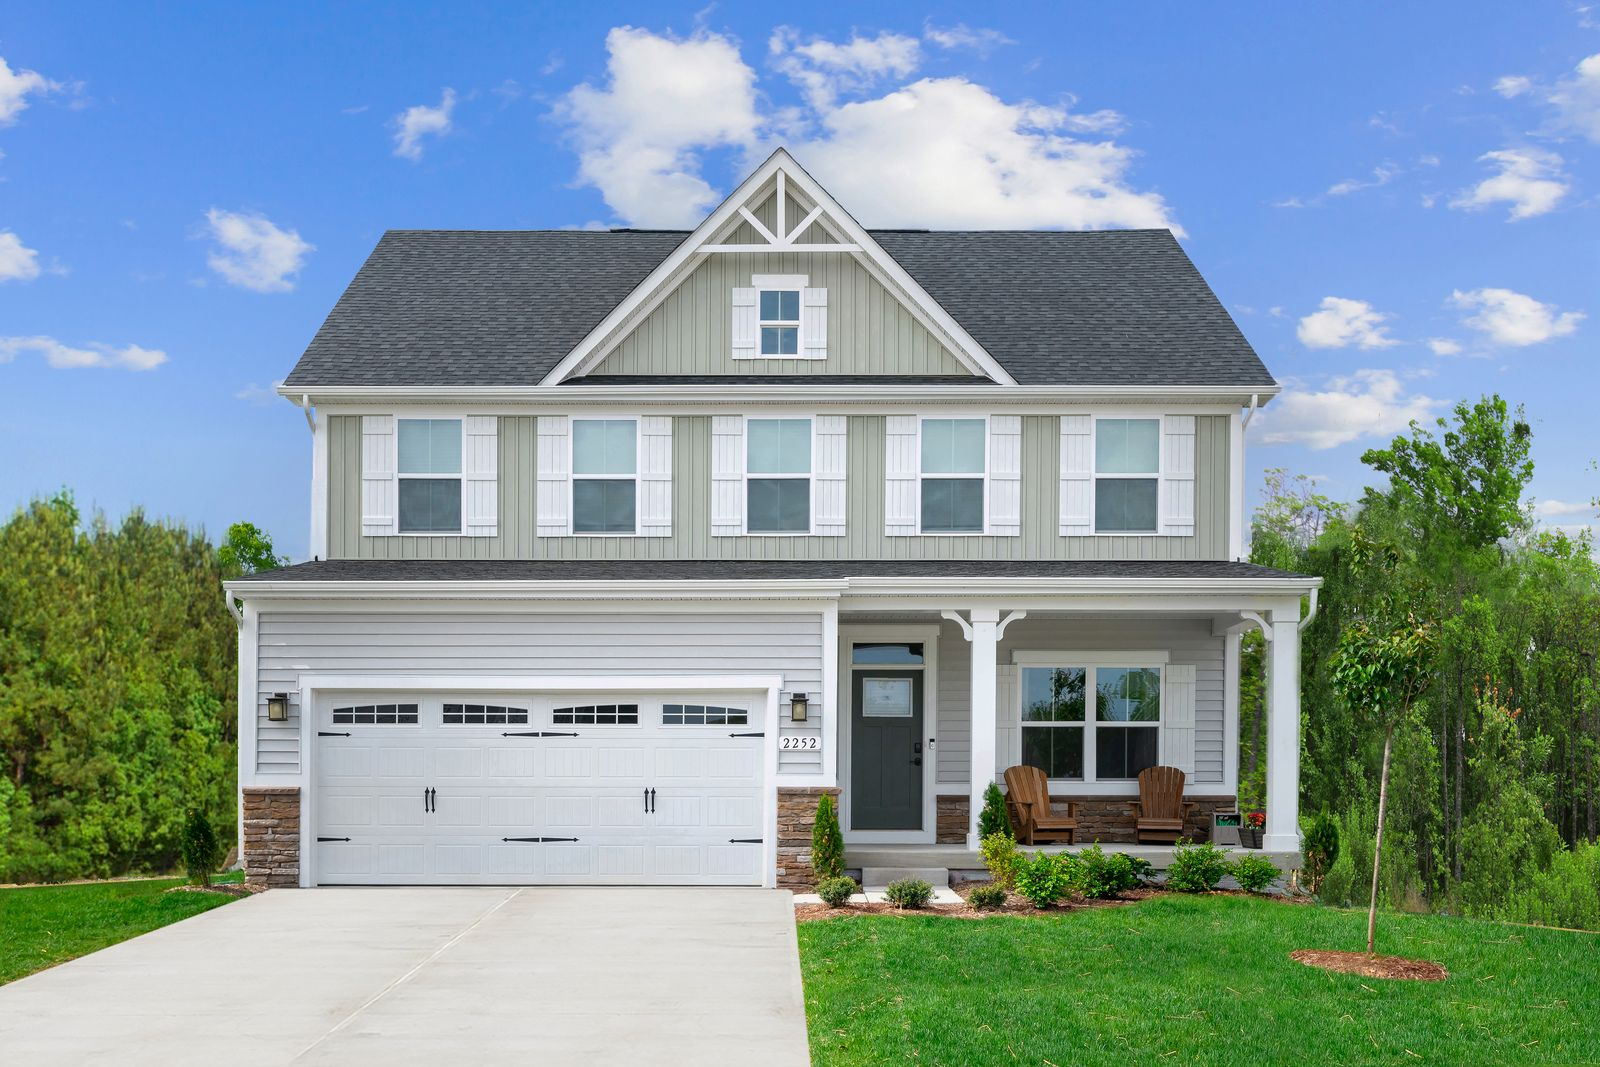 WELCOME HOME TO FAIRWAY GLENN:Best priced new homes in Willoughby Schools, located conveniently to downtown Willoughby and Cleveland, Rt 2, I-90 and I-271!Click here to schedule your visit today!